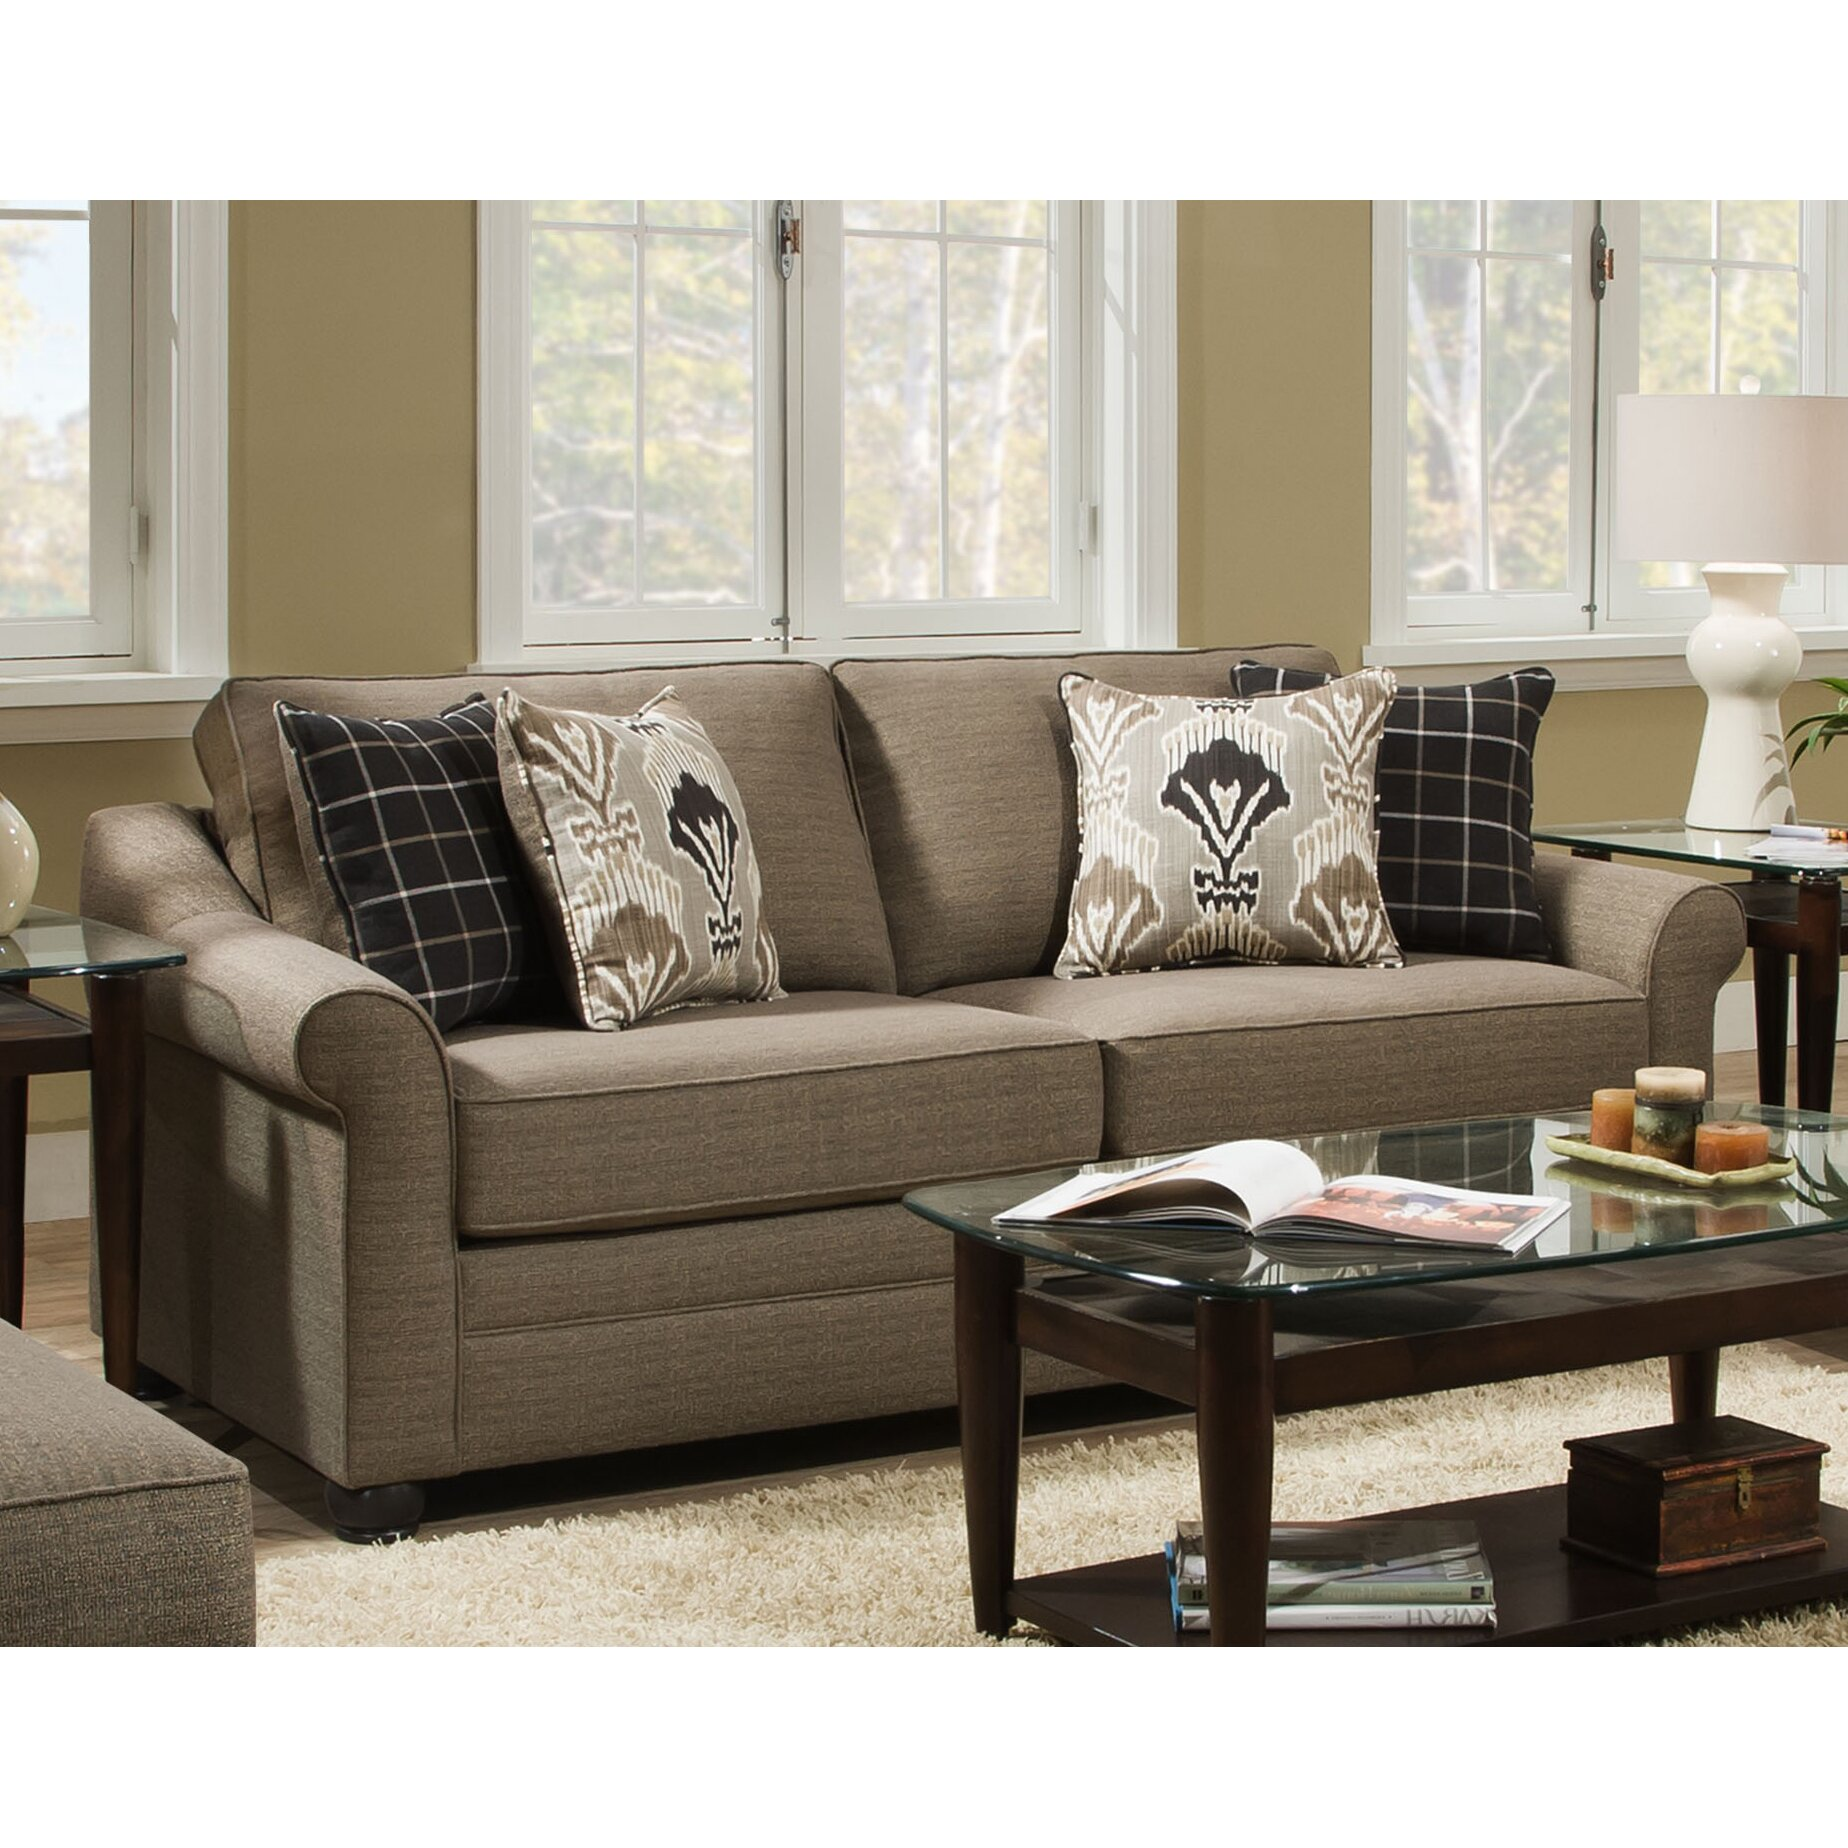 Defaultname Simmons Upholstery Dawn Sectional Sofa 2 Piece